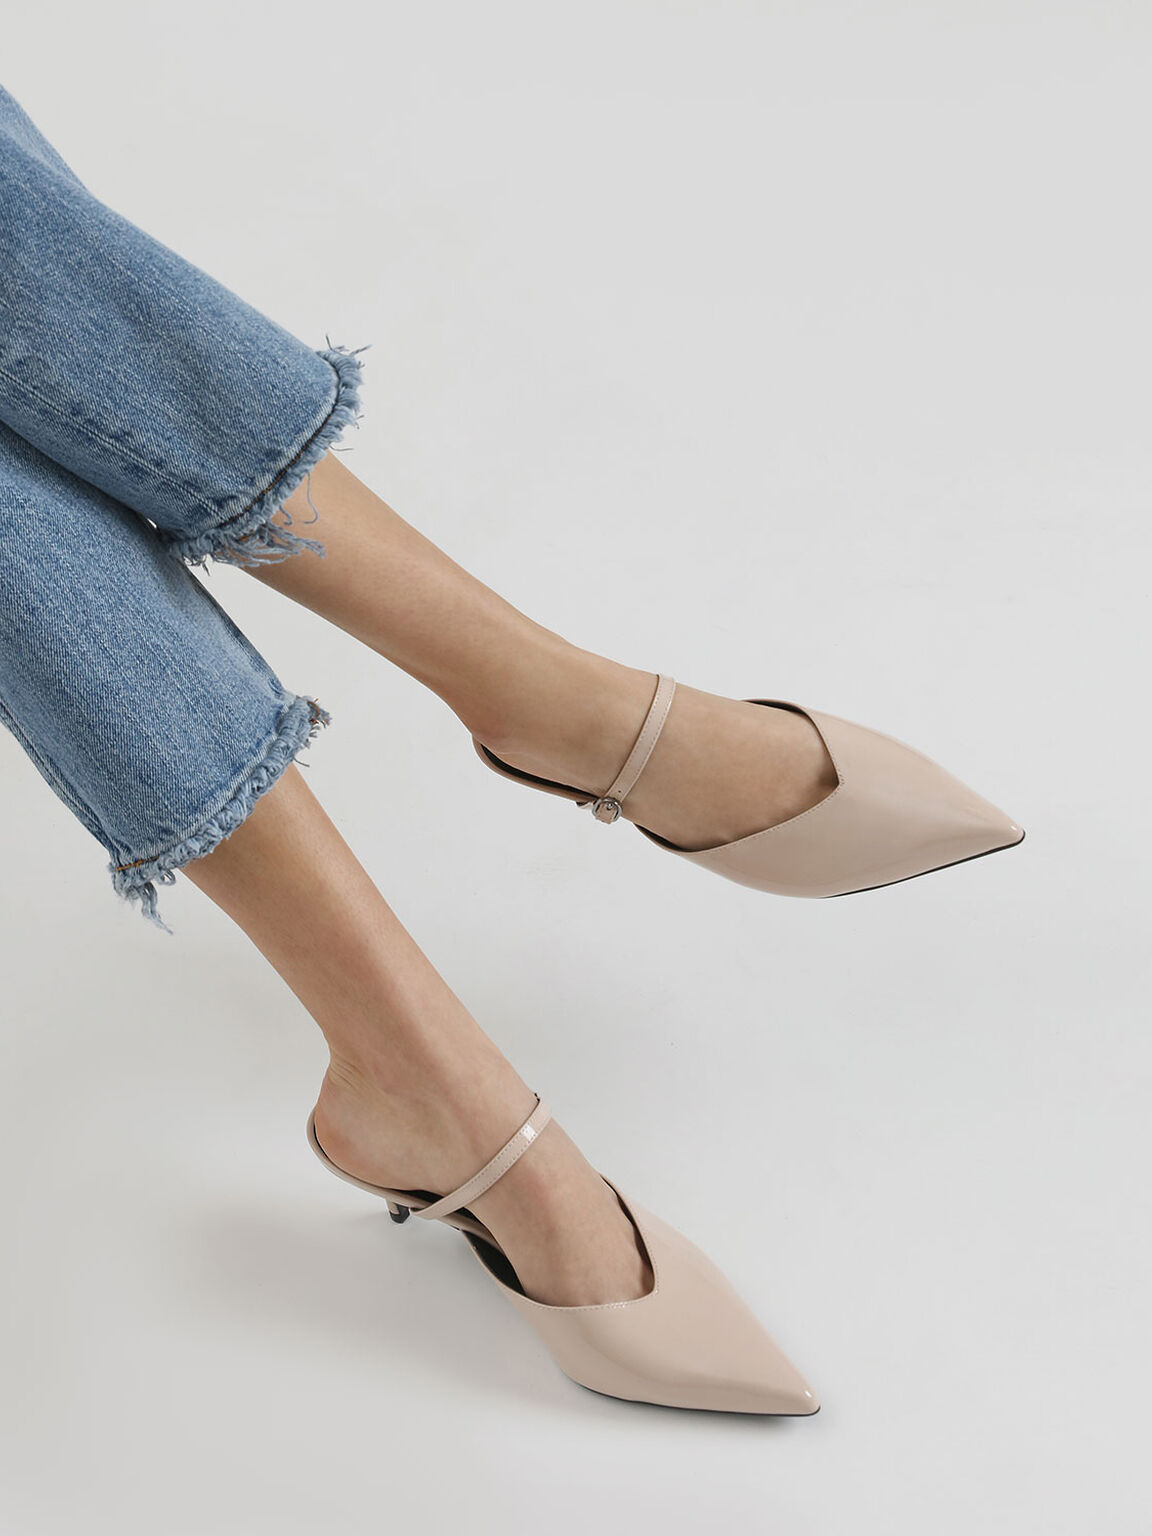 Patent Leather Mary Jane Kitten Heel Mules, Nude, hi-res